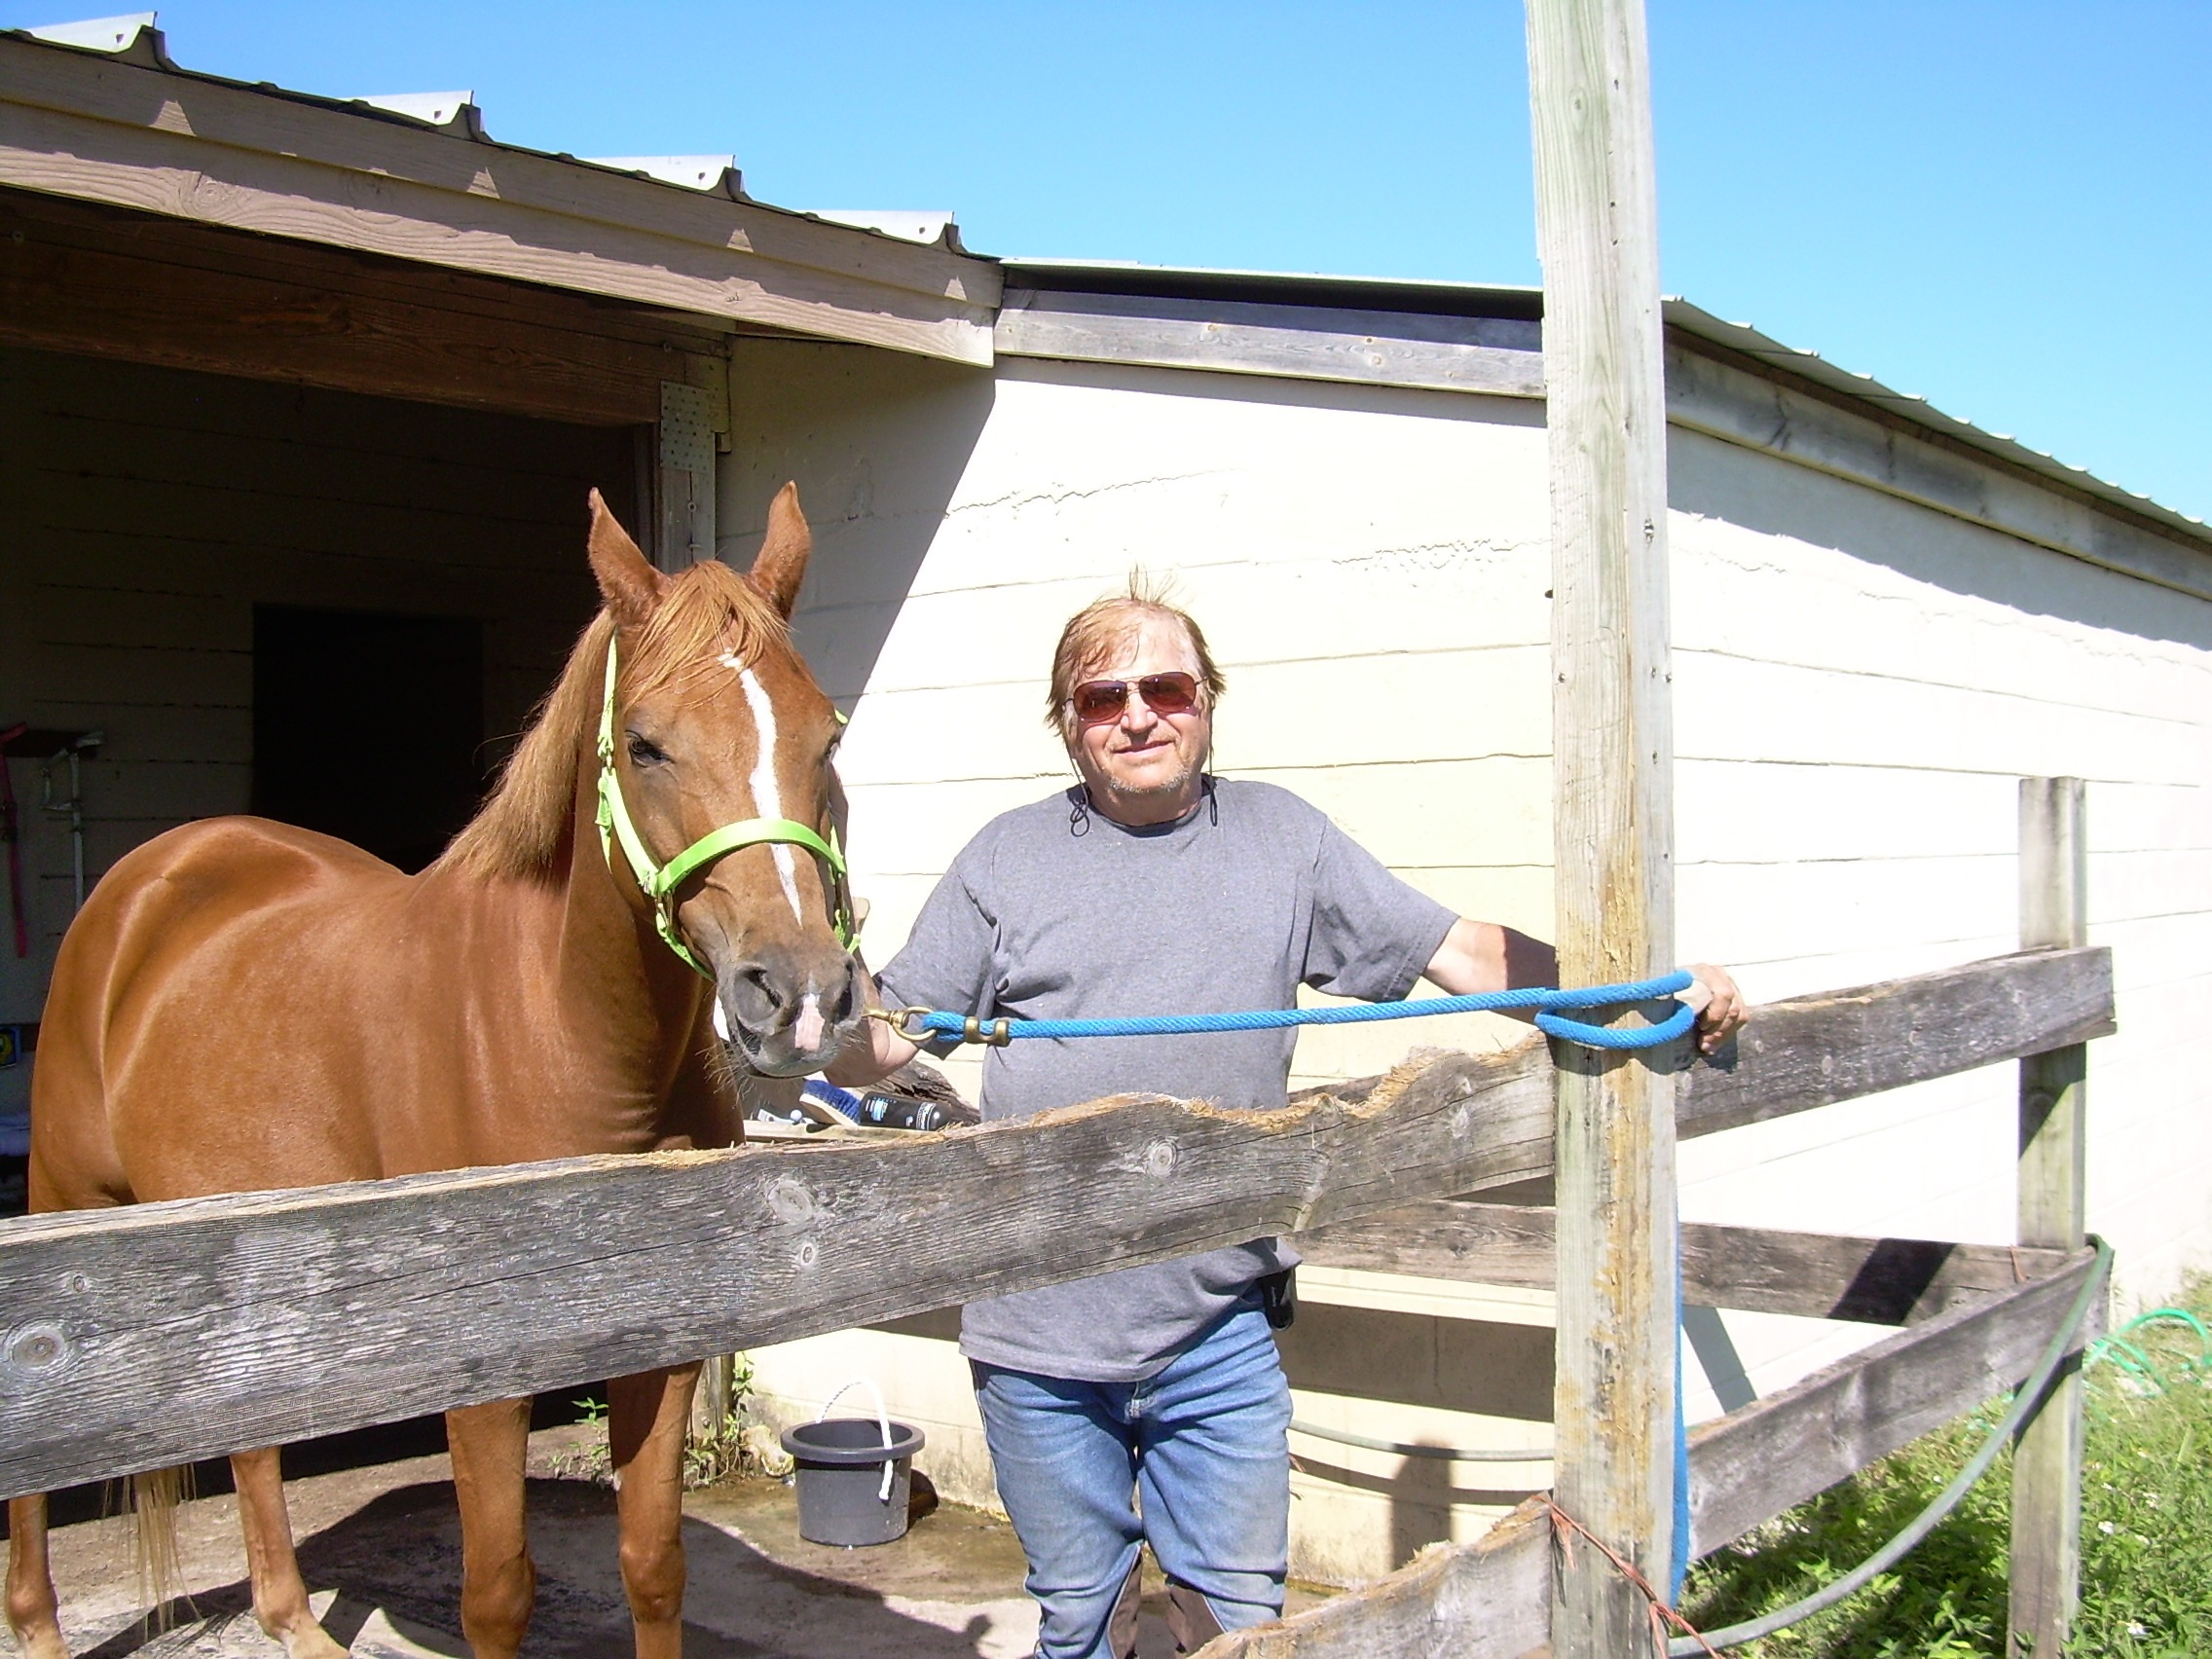 Experienced adult wants to lease your horse…Ocala, Belleview etc